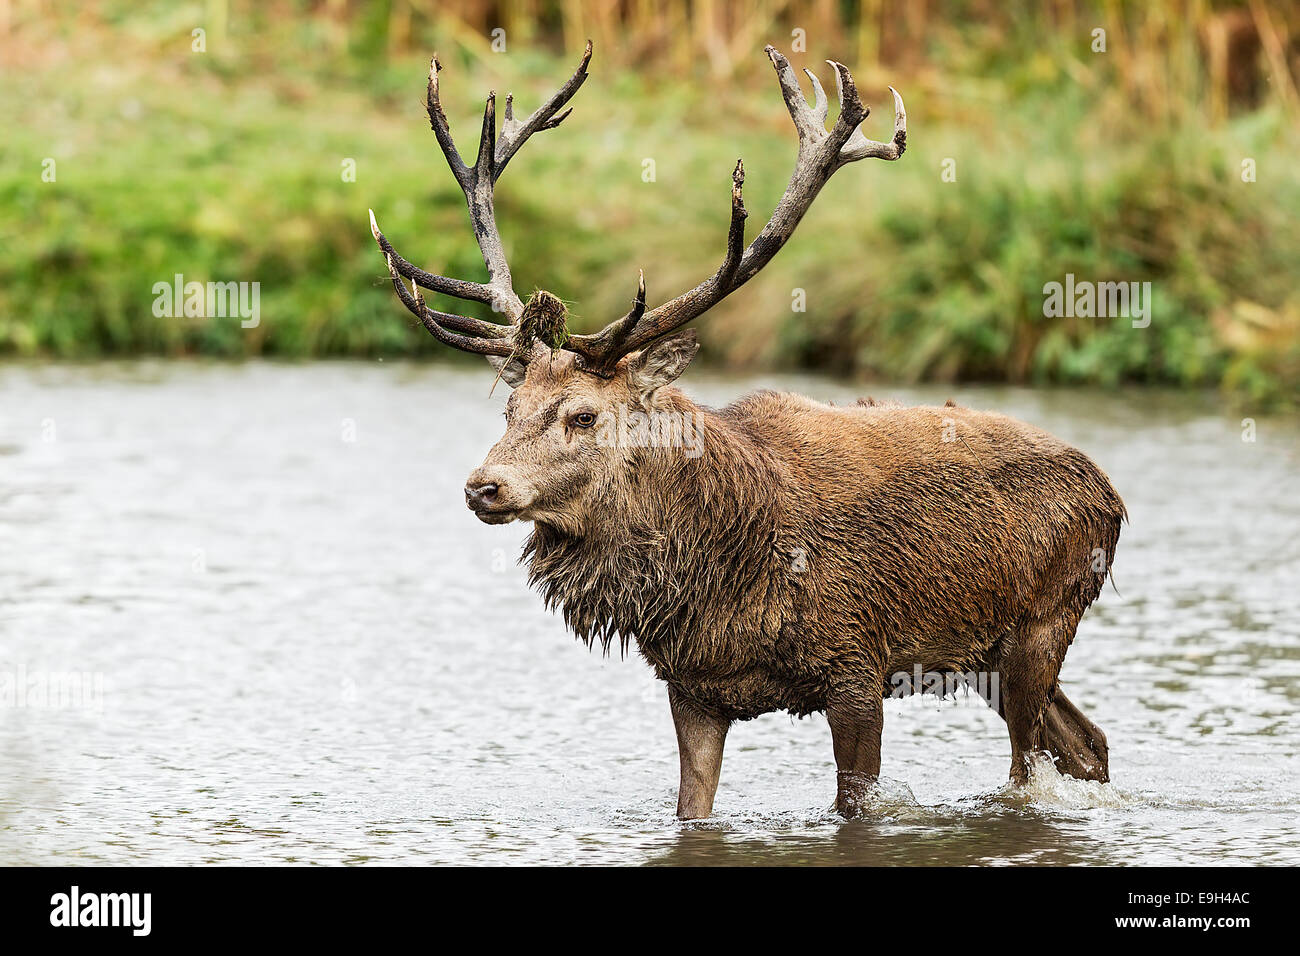 Red deer (Cervus elaphus) stag during the annual rut - Stock Image